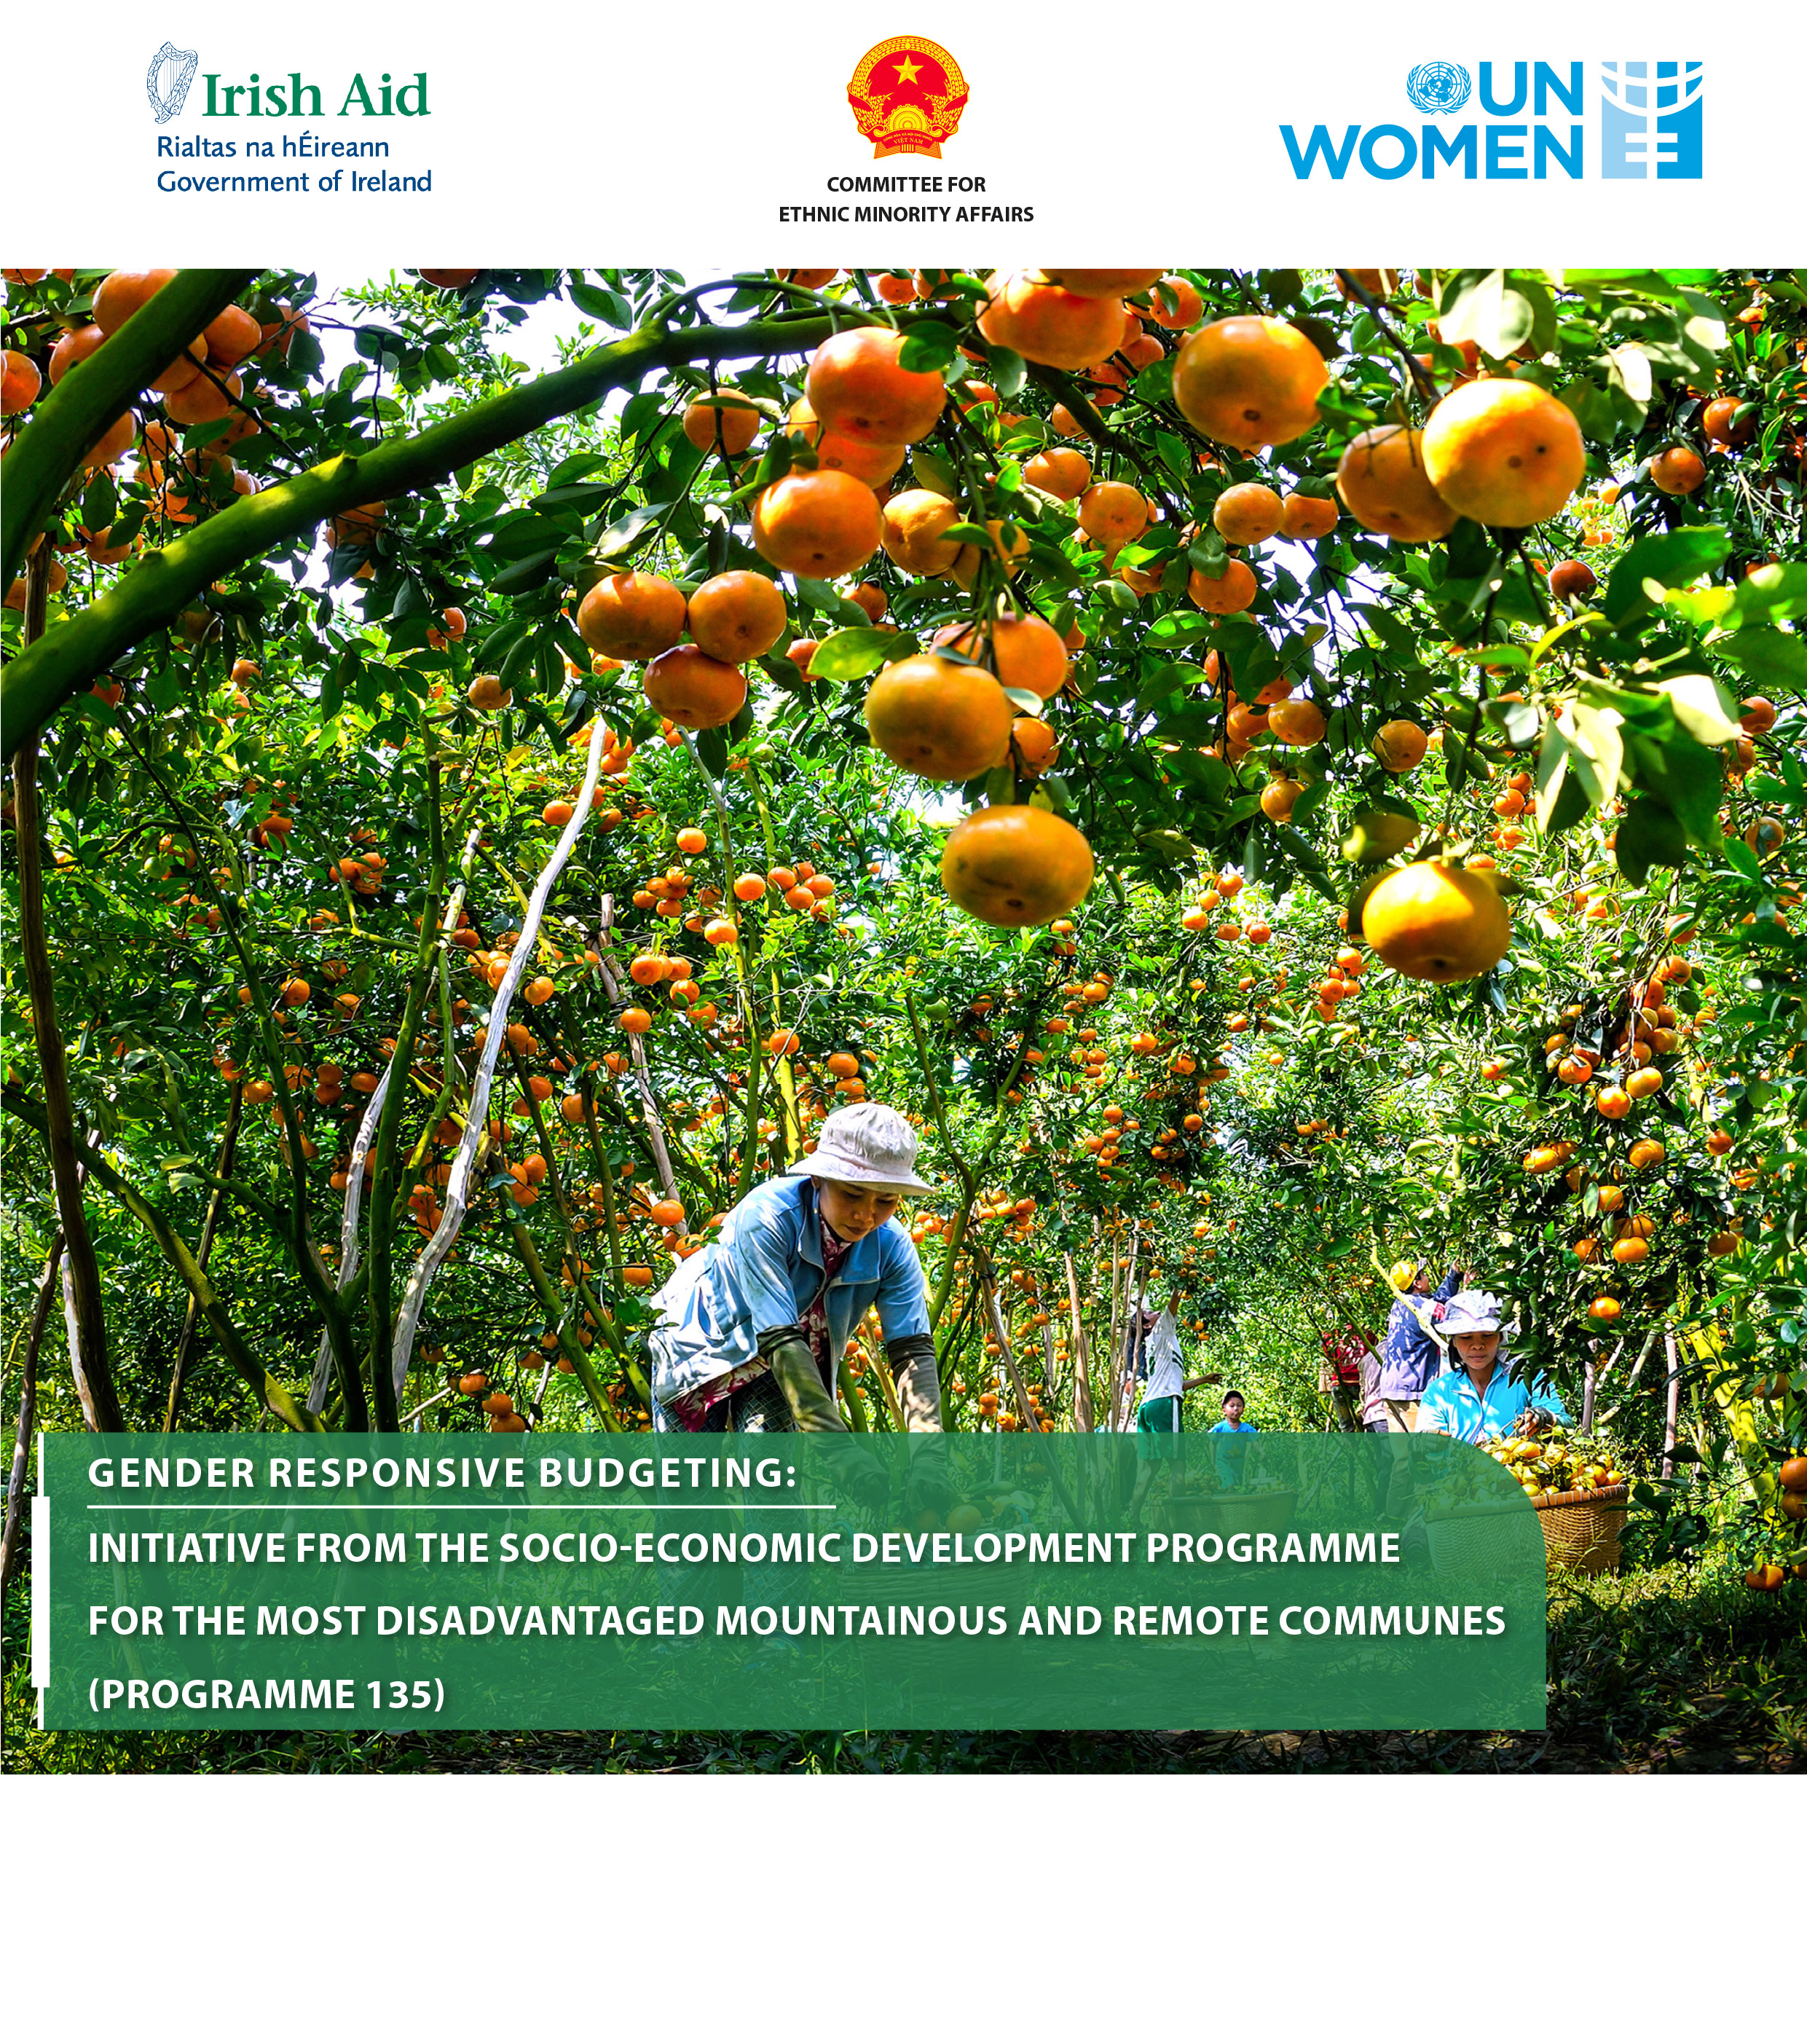 GENDER RESPONSIVE BUDGETING: INITIATIVE FROM THE SOCIO-ECONOMIC DEVELOPMENT PROGRAMME FOR THE EXTREMELY DIFFICULT MOUNTAINOUS AND REMOTE COMMUNES (PROGRAMME 135)